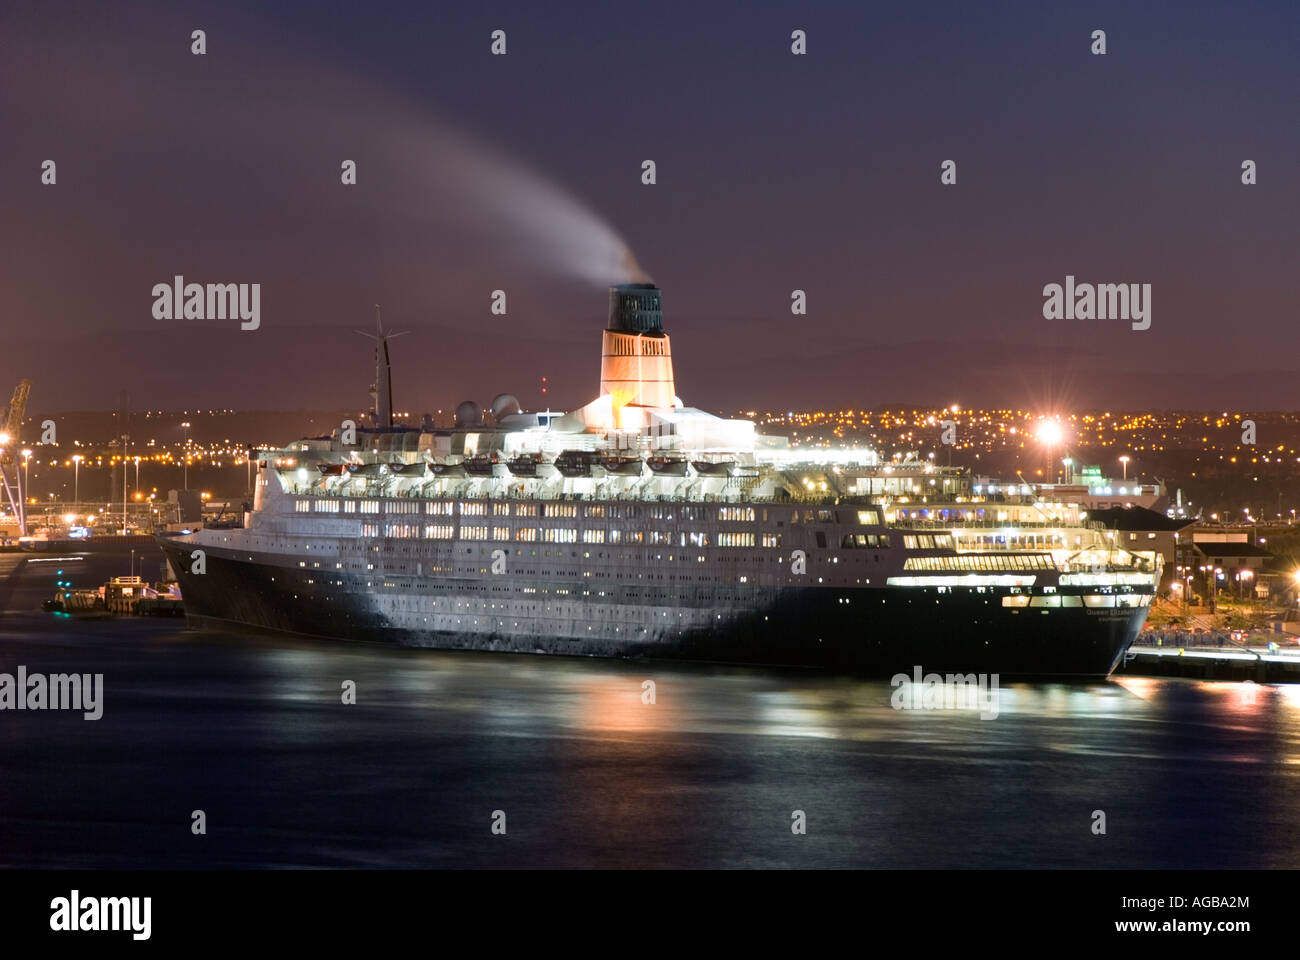 Cunard liner Queen Elizabeth 2 berthed at Tyne Commission Quay, Newcastle upon Tyne. - Stock Image